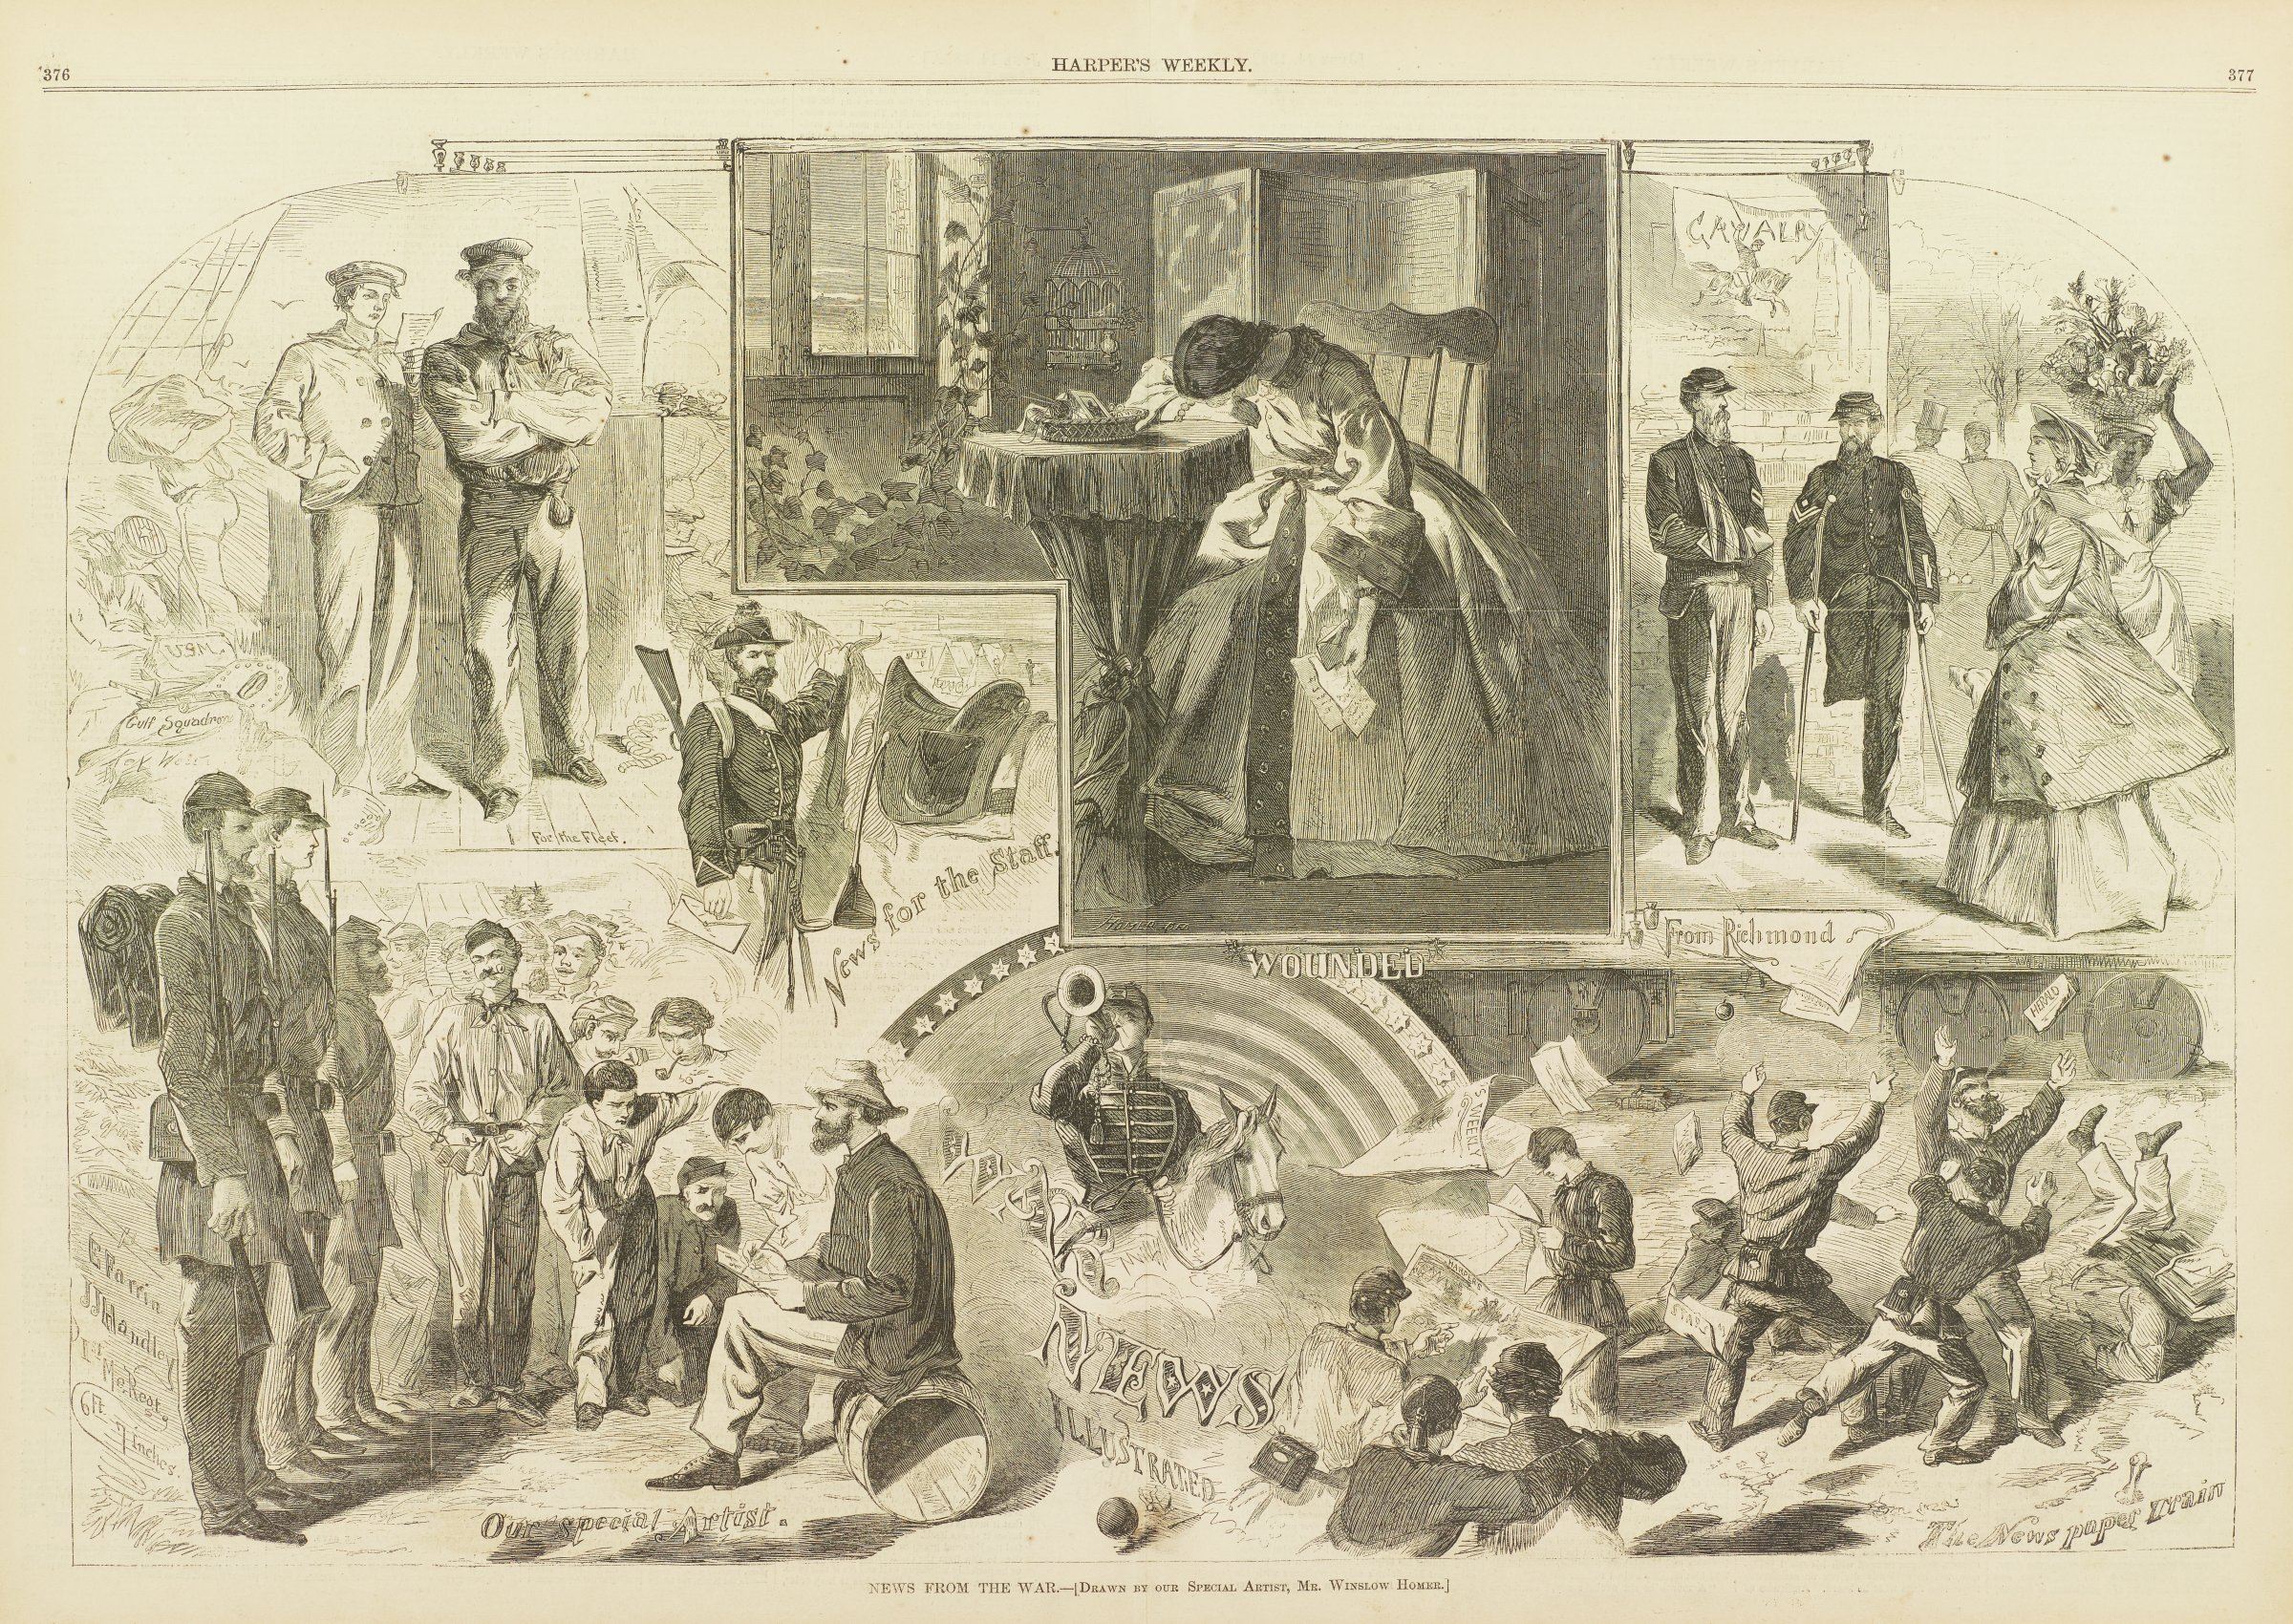 """Composite image with vignettes depicting how news was conveyed during the Civil War. Clockwise, from top center: (1) In """"Wounded,"""" a woman buries her head in hand after receiving a letter from the front telling her a loved one has been wounded. (2) In """"From Richmond,"""" wounded soldiers who have returned home from battle speak to a woman in the street.; (3) """"The Newspaper Train"""" depicts soldiers as they rush to greet a train from which newspapers are being thrown.; (4) Above the title """"War News Illustrated,"""" a soldier on horseback blows a bugle.; (5) In """"Our Special Artist,"""" Winslow Homer sits atop a barrel turned on its side, sketching Union soldiers in camp.; (6) """"News for the Staff"""" depicts the arrival of a courier with a letter for a commanding officer.; (7) In """"For the Fleet,"""" two sailors wait at mail is distributed."""